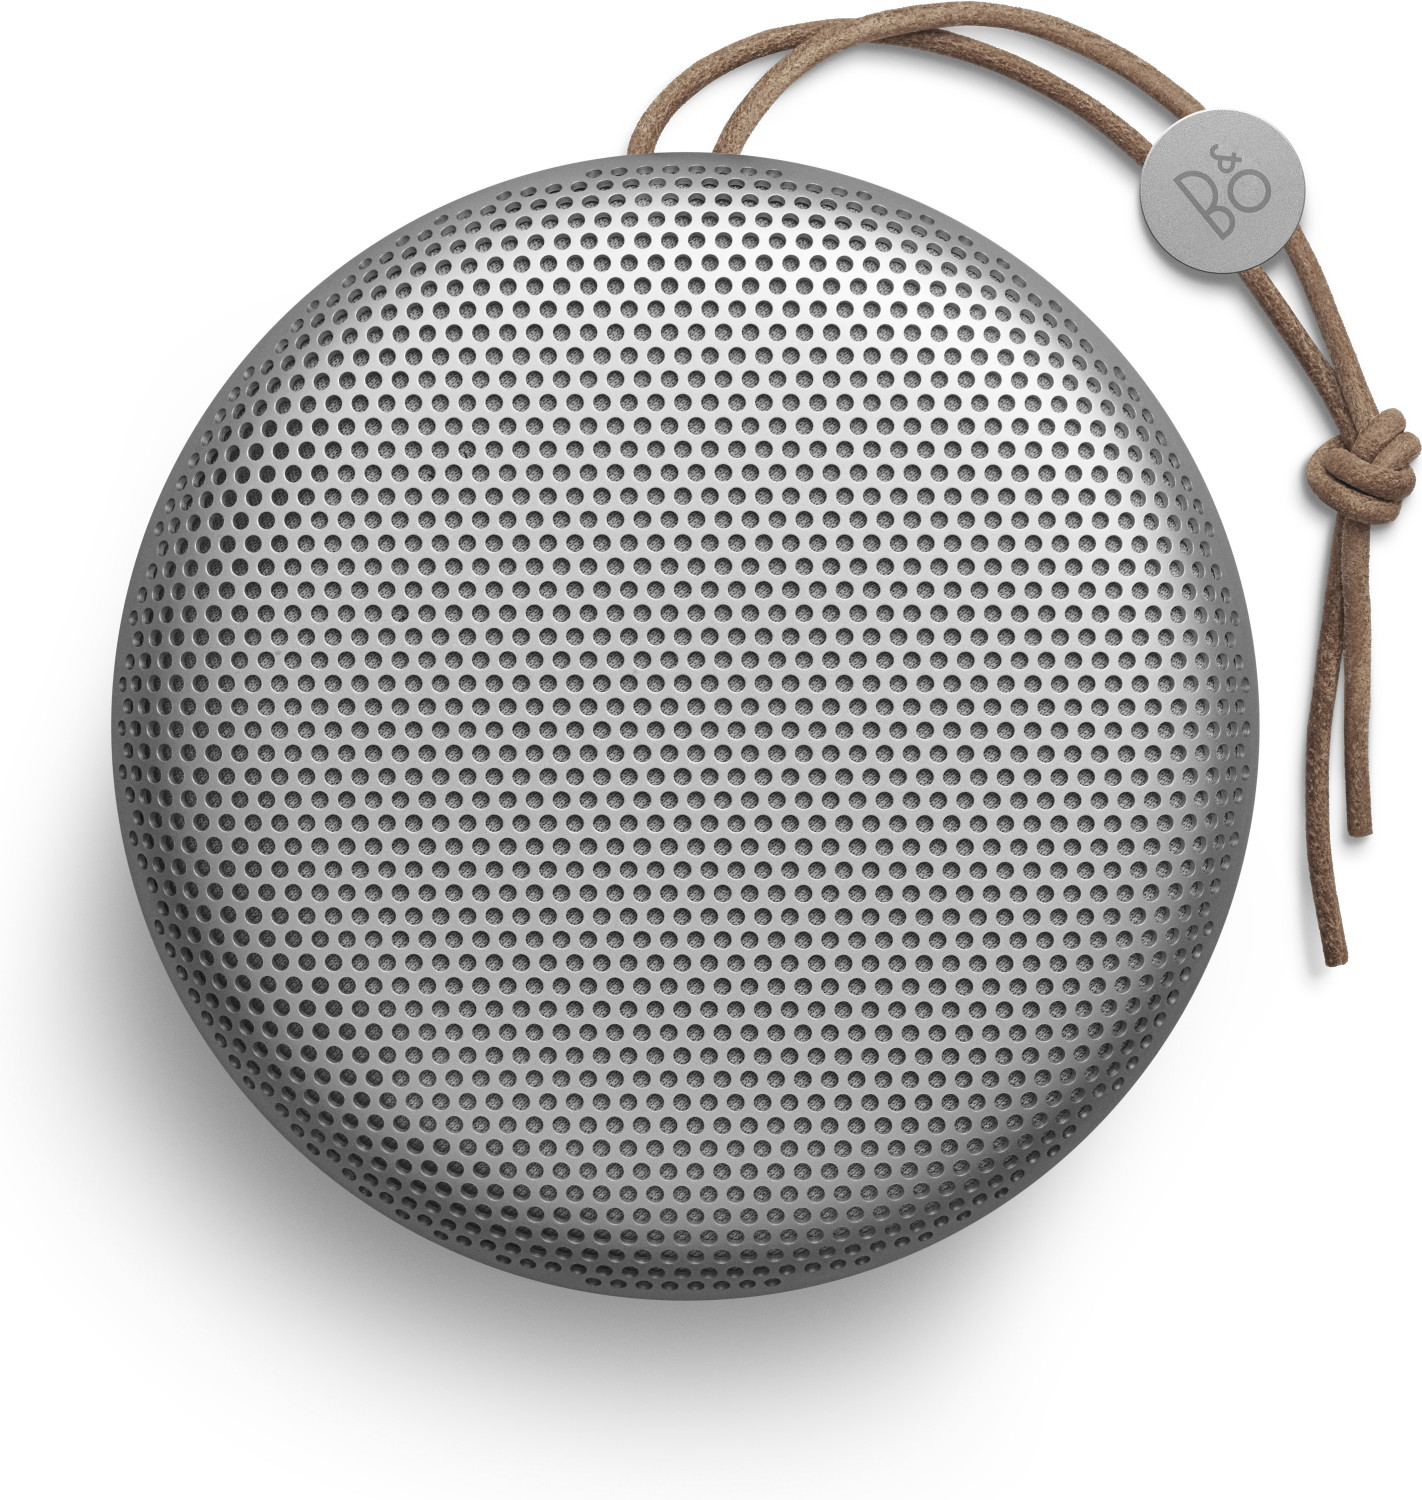 Image of Bang & Olufsen Beoplay A1 Natural